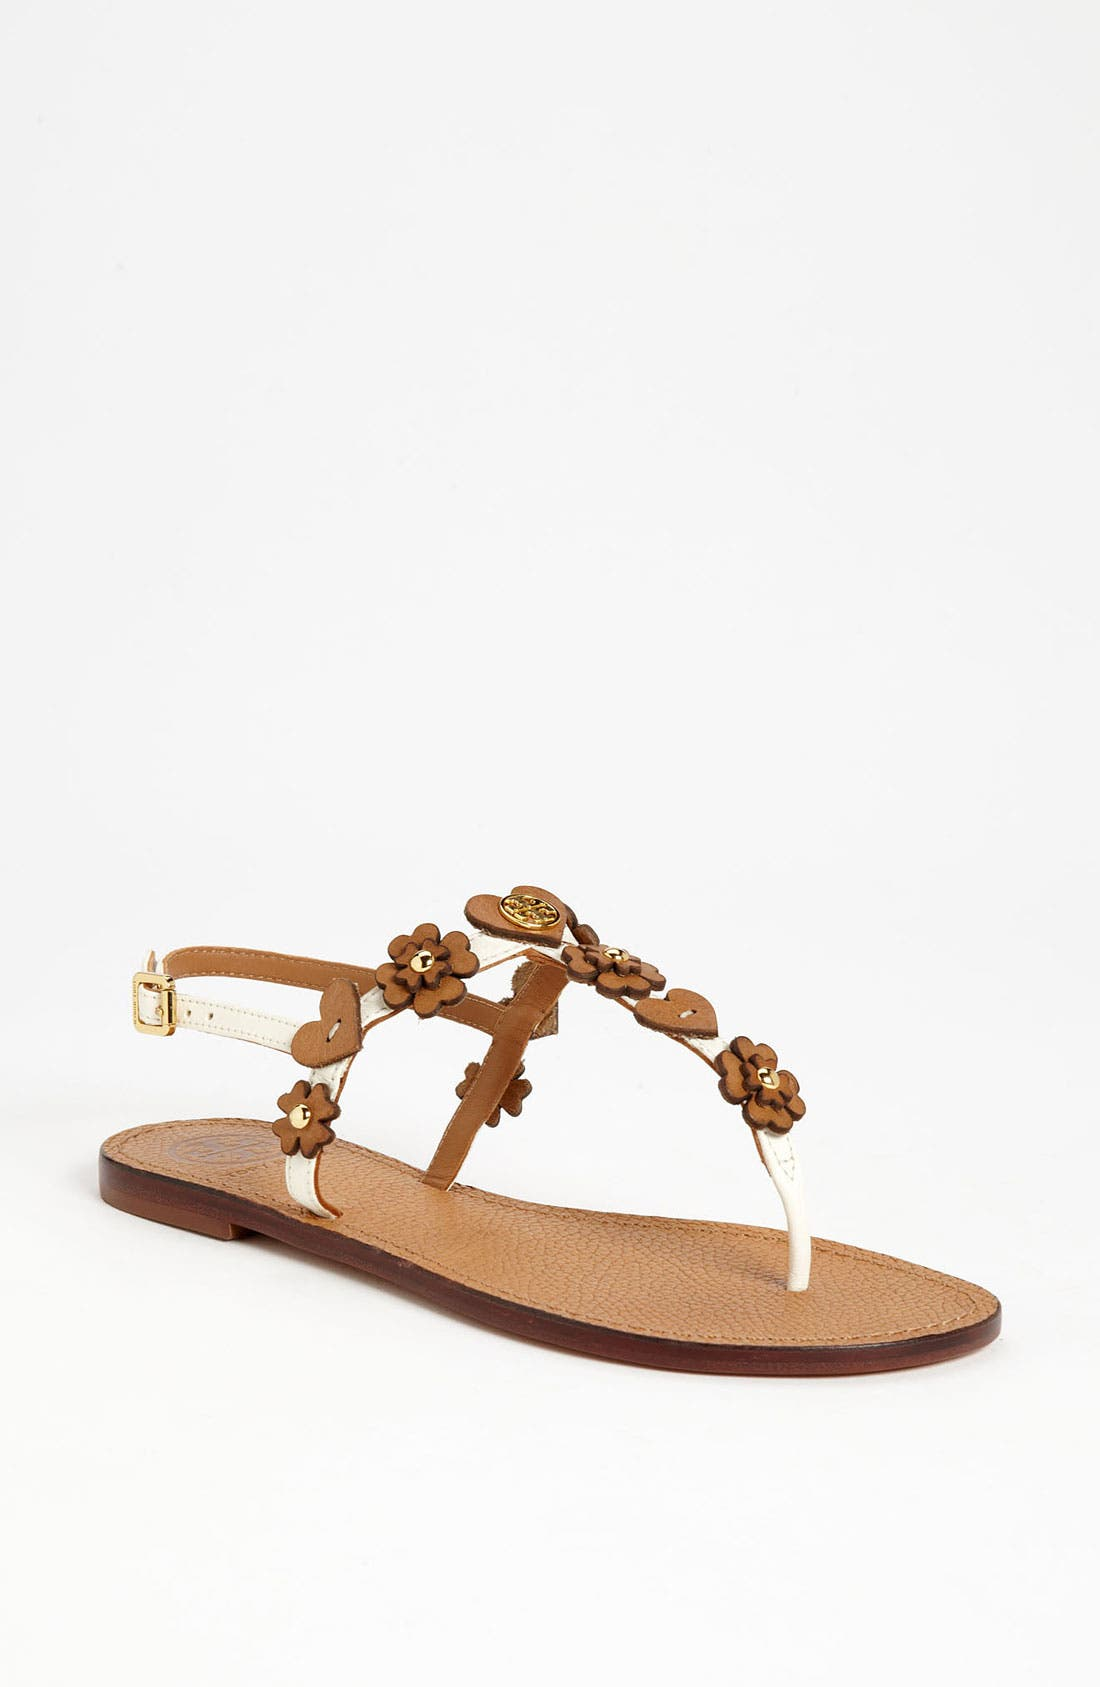 'Cori' Thong Sandal,                         Main,                         color, 105